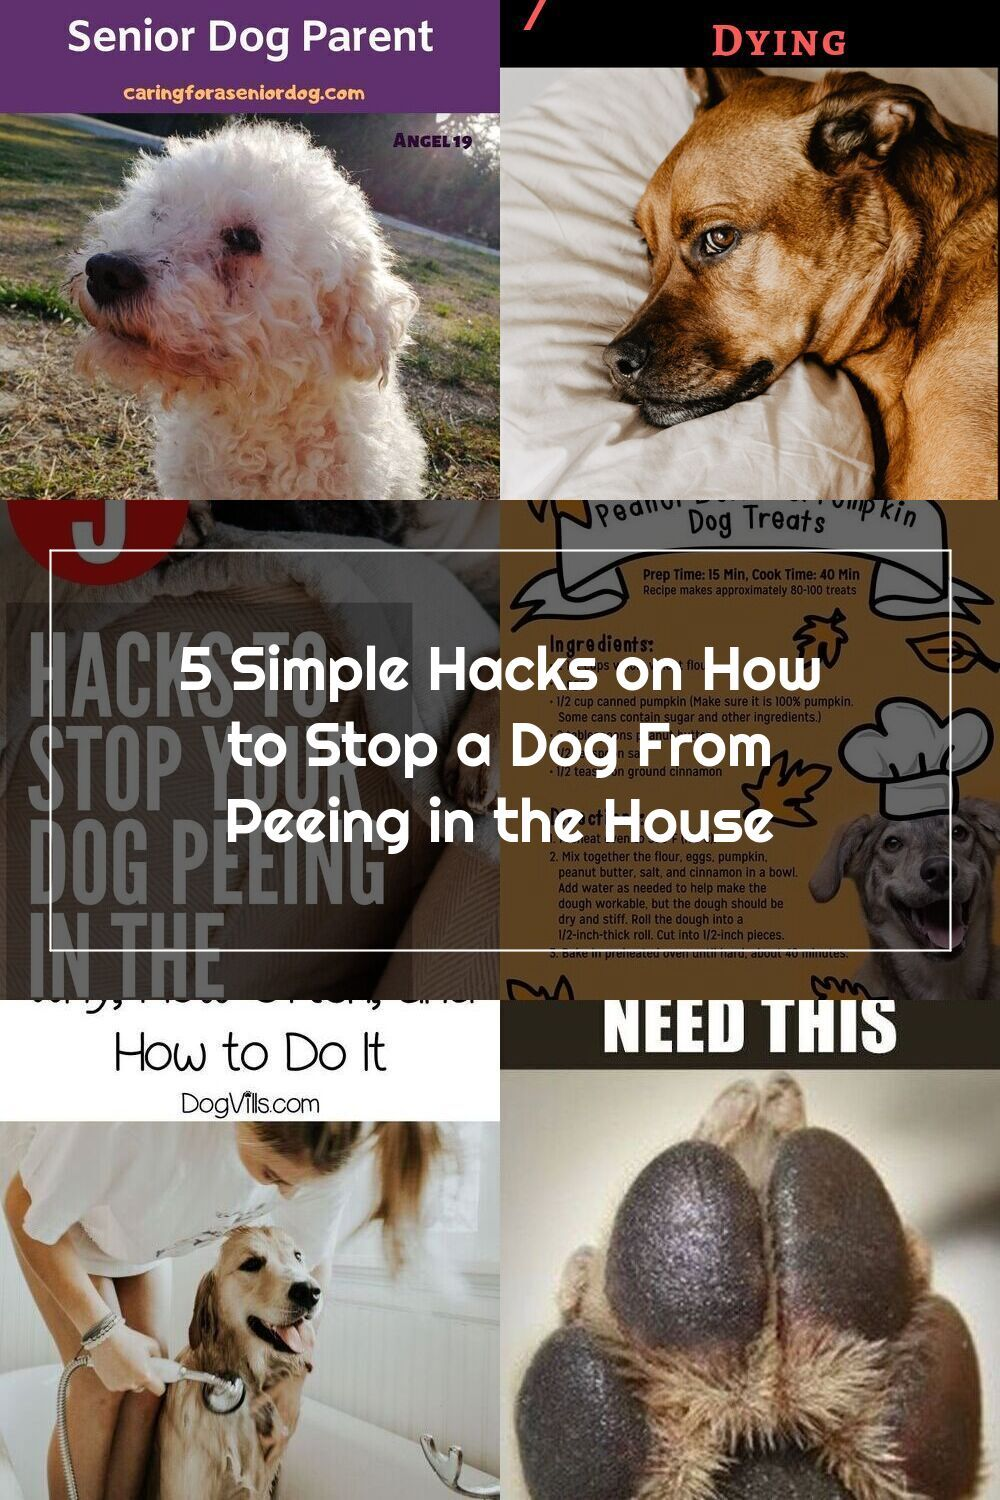 Stop Dog Peeing In The House With Theses Easy Dog Training Tips To Help Potty Train Or House Train Any Dog Or Puppy Gooddoggies In 2020 Dog Pee Dog Parents Dog Care